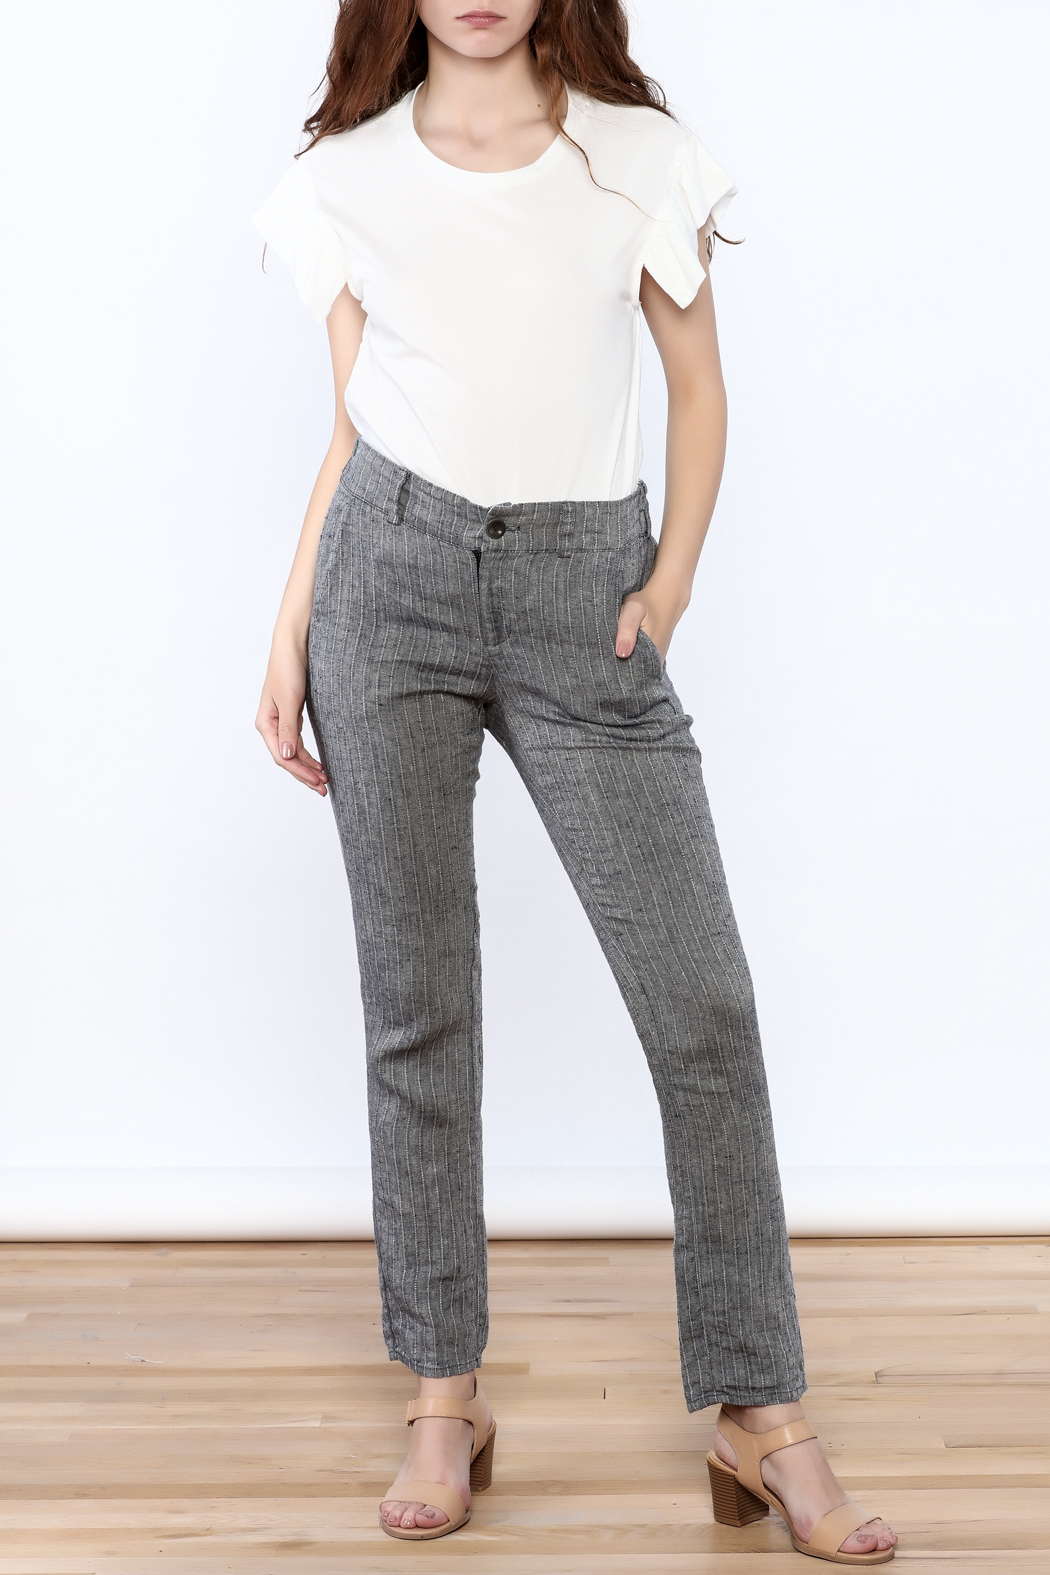 Neesh by D.A.R. Pinstripe Linen Pants - Front Full Image